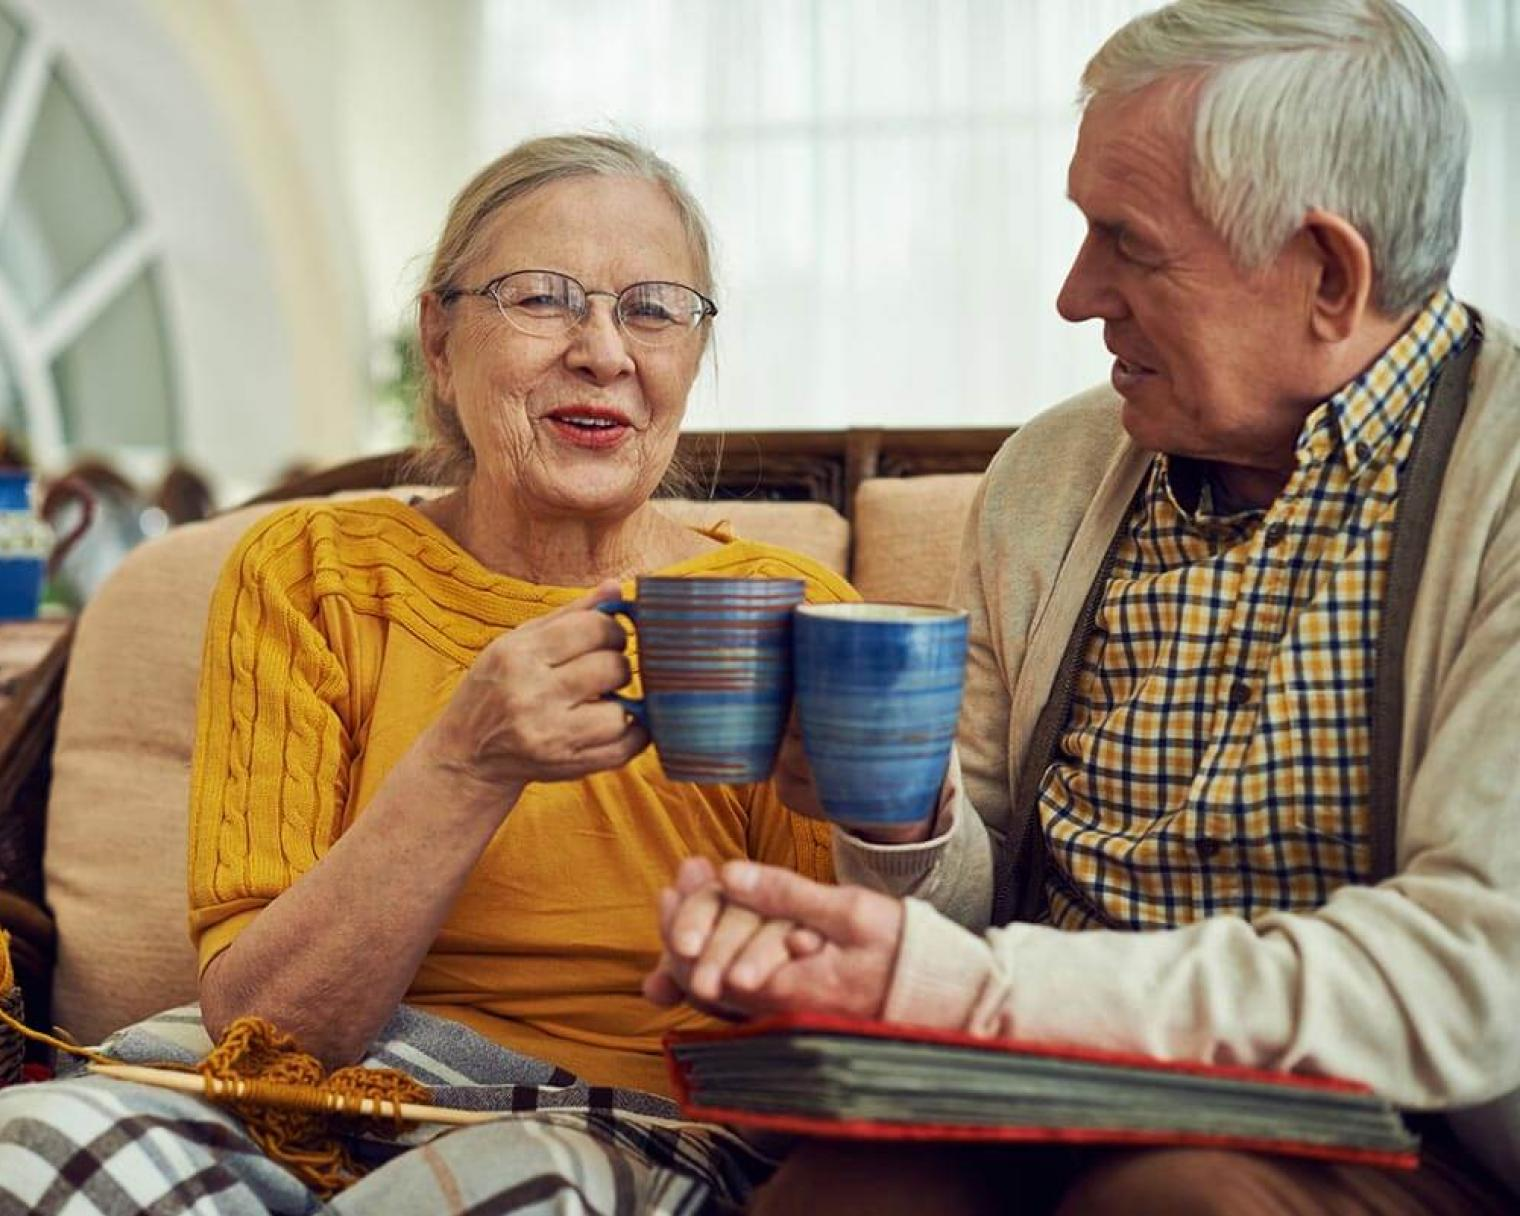 Elderly couple sitting together drinking hot drink